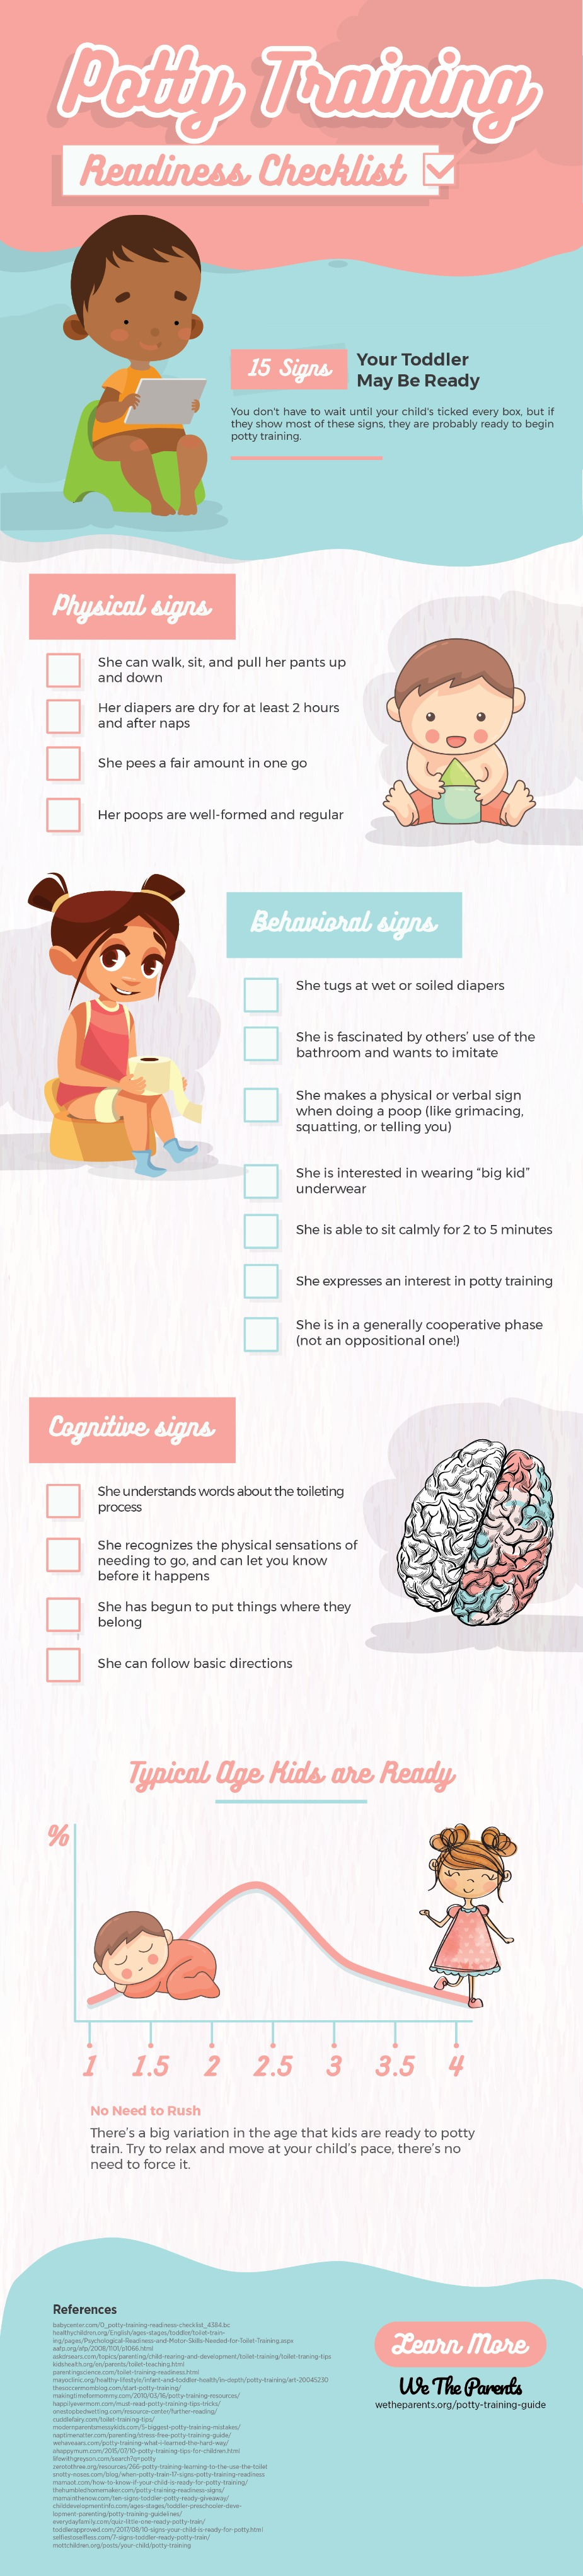 Potty Training Checklist and Infographic